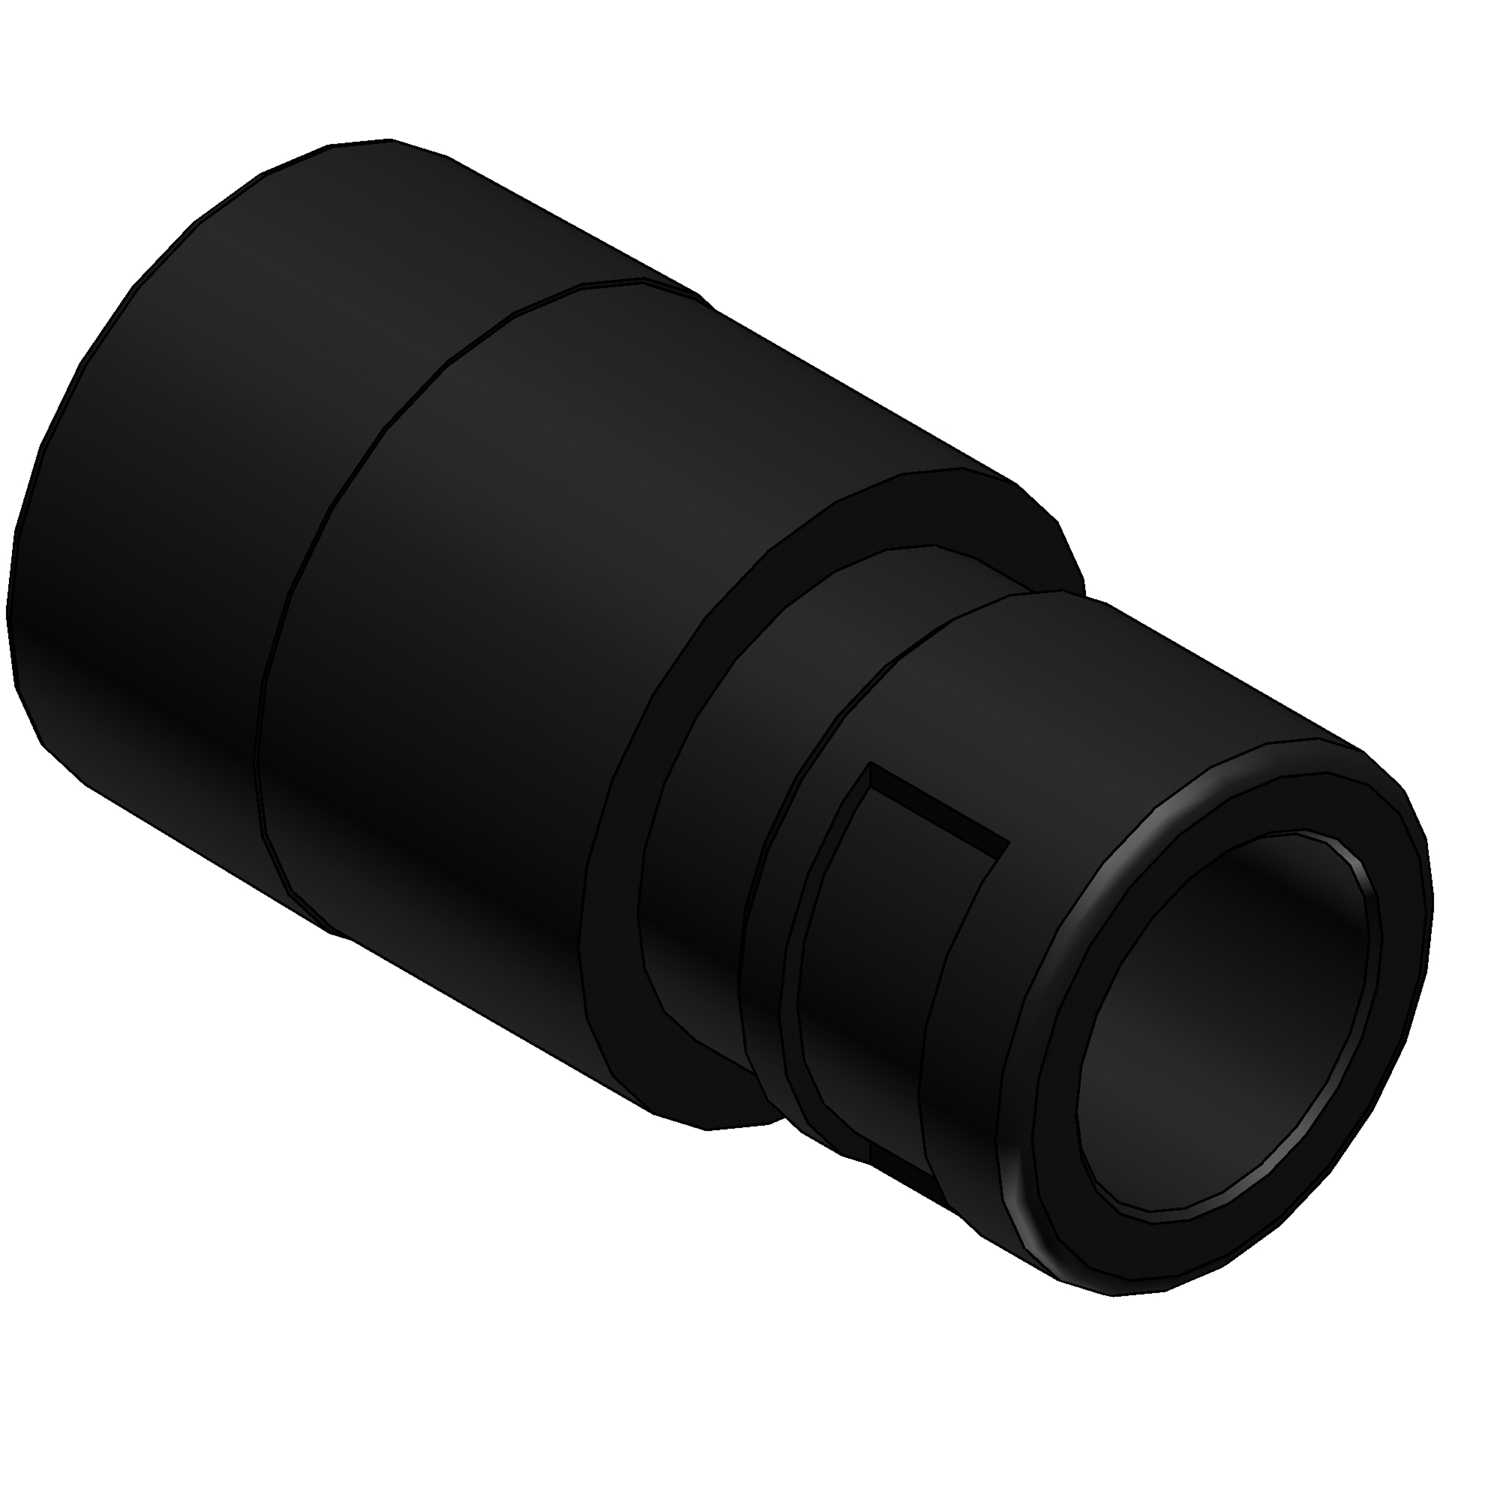 T&B BAVD-29/17GT ADAPTER,REDUCTIONNW29/NW17GT,BL